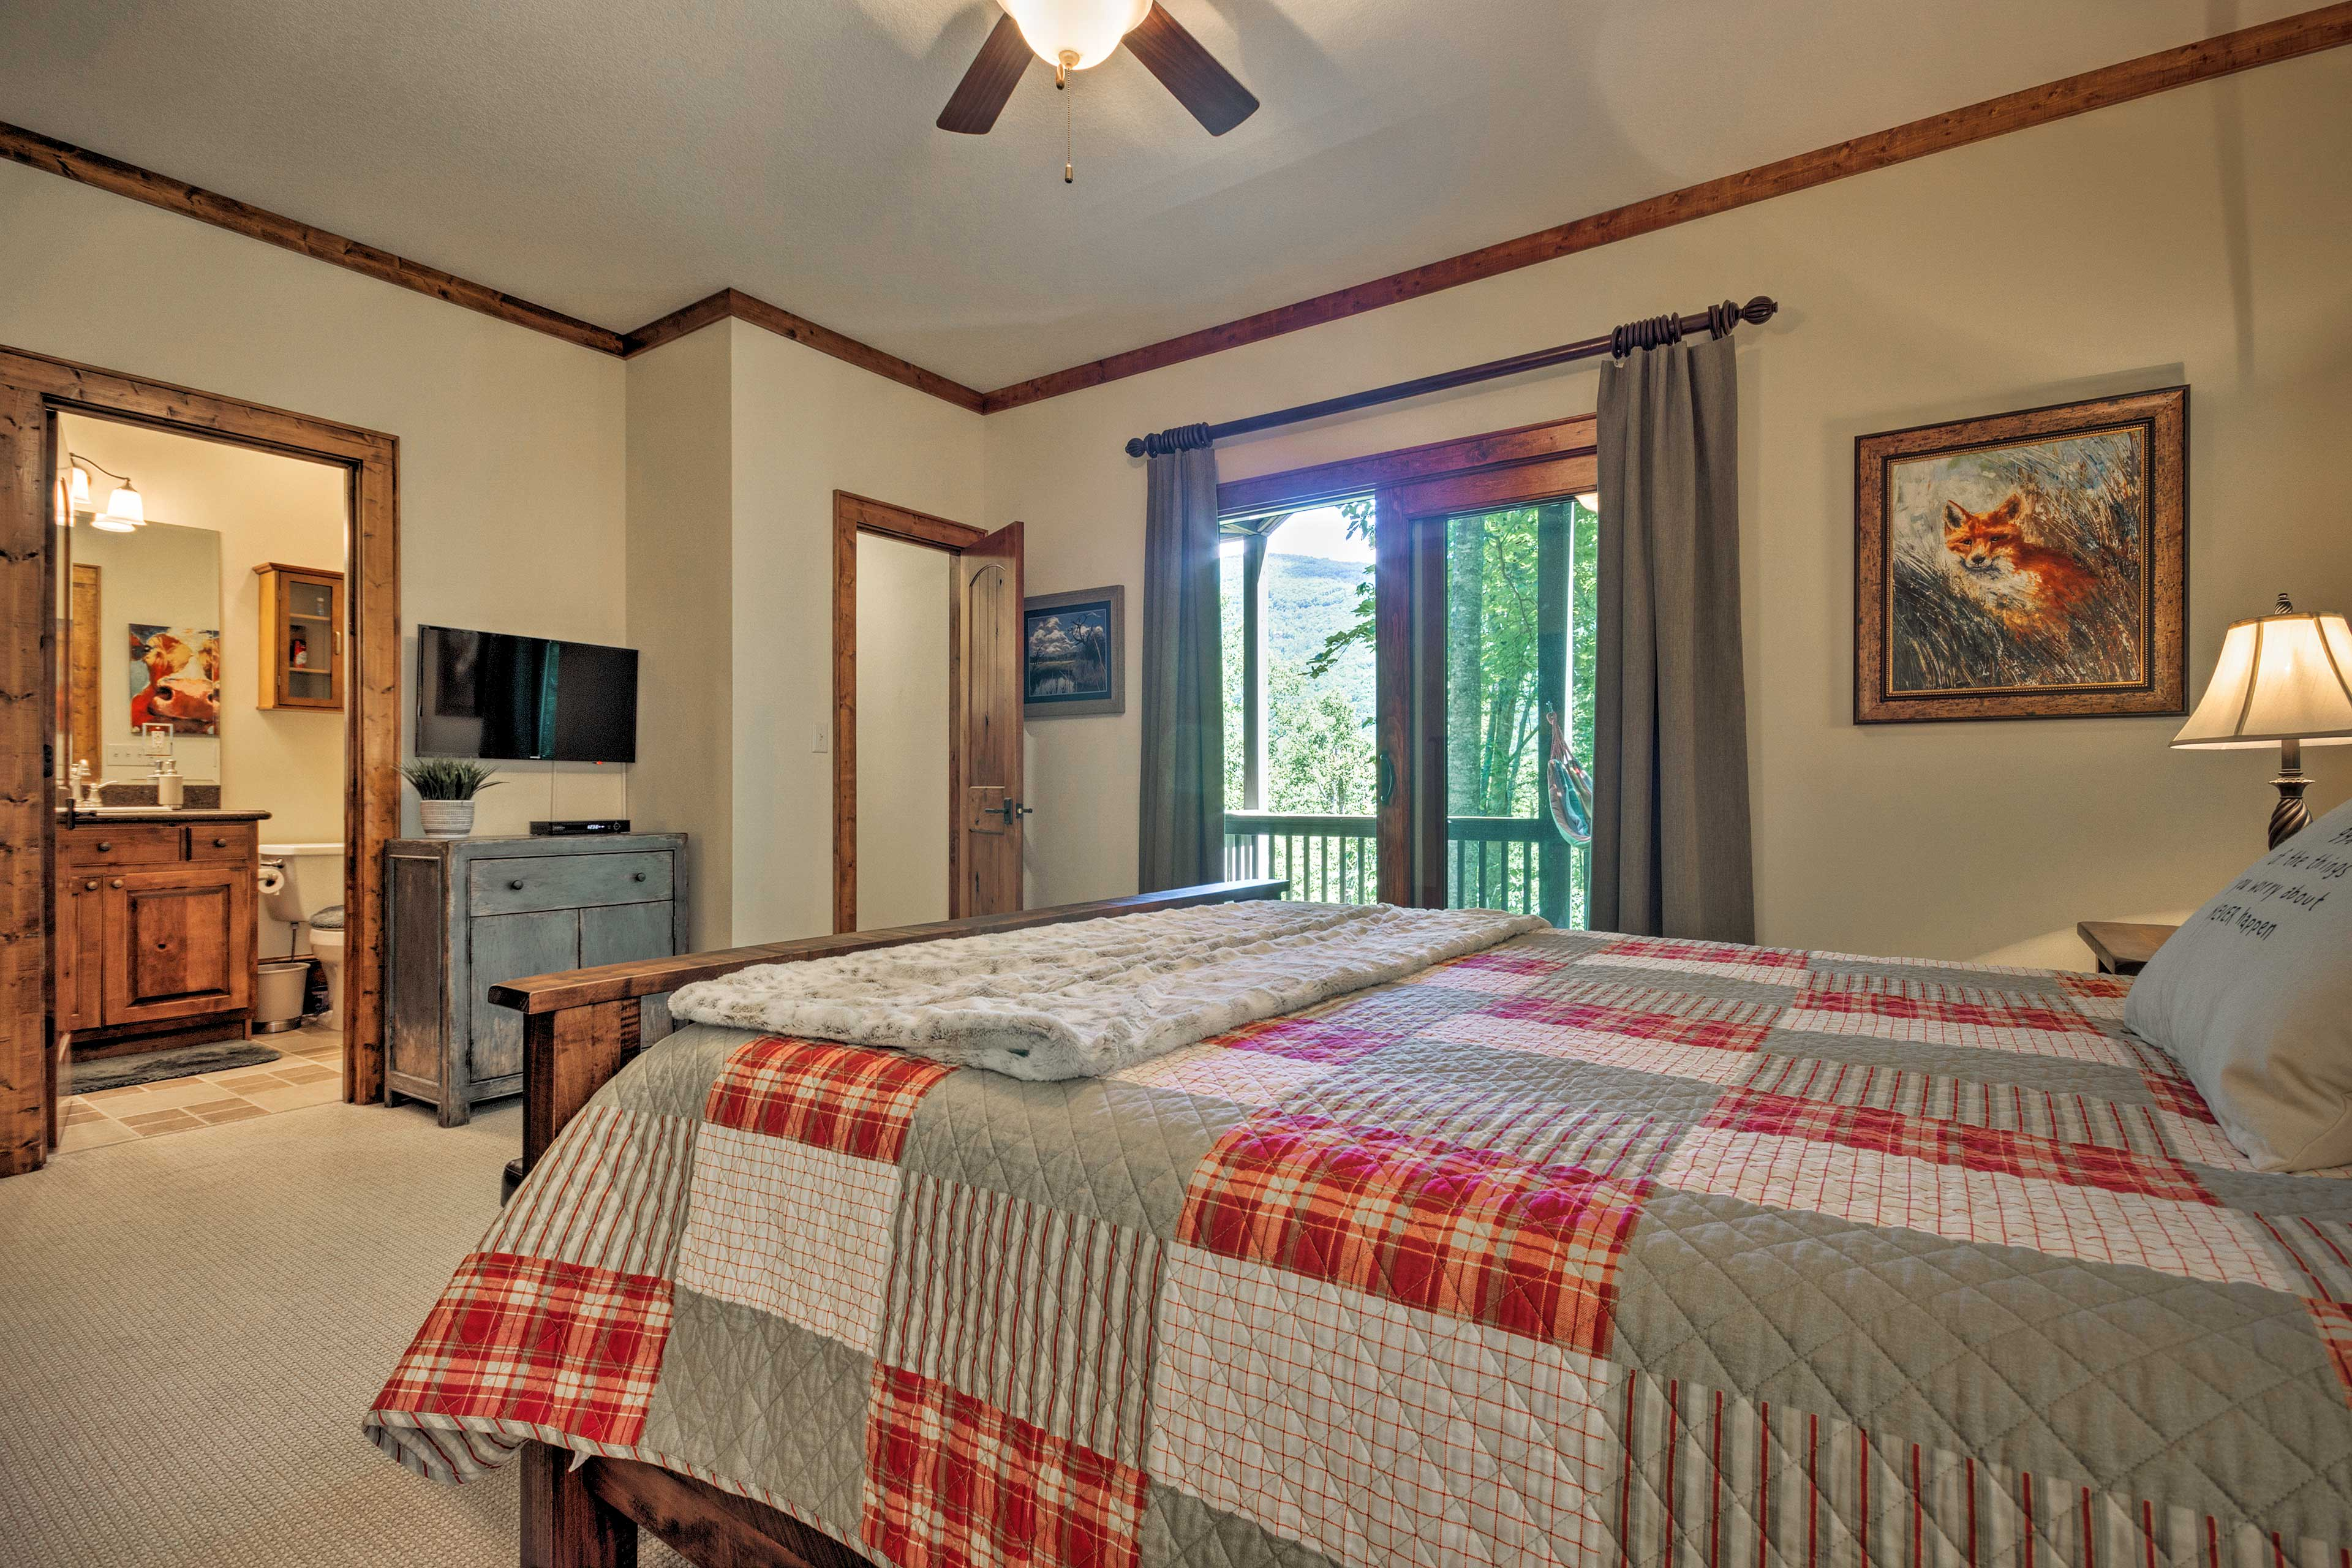 The room includes a queen bed and flat-screen TV.